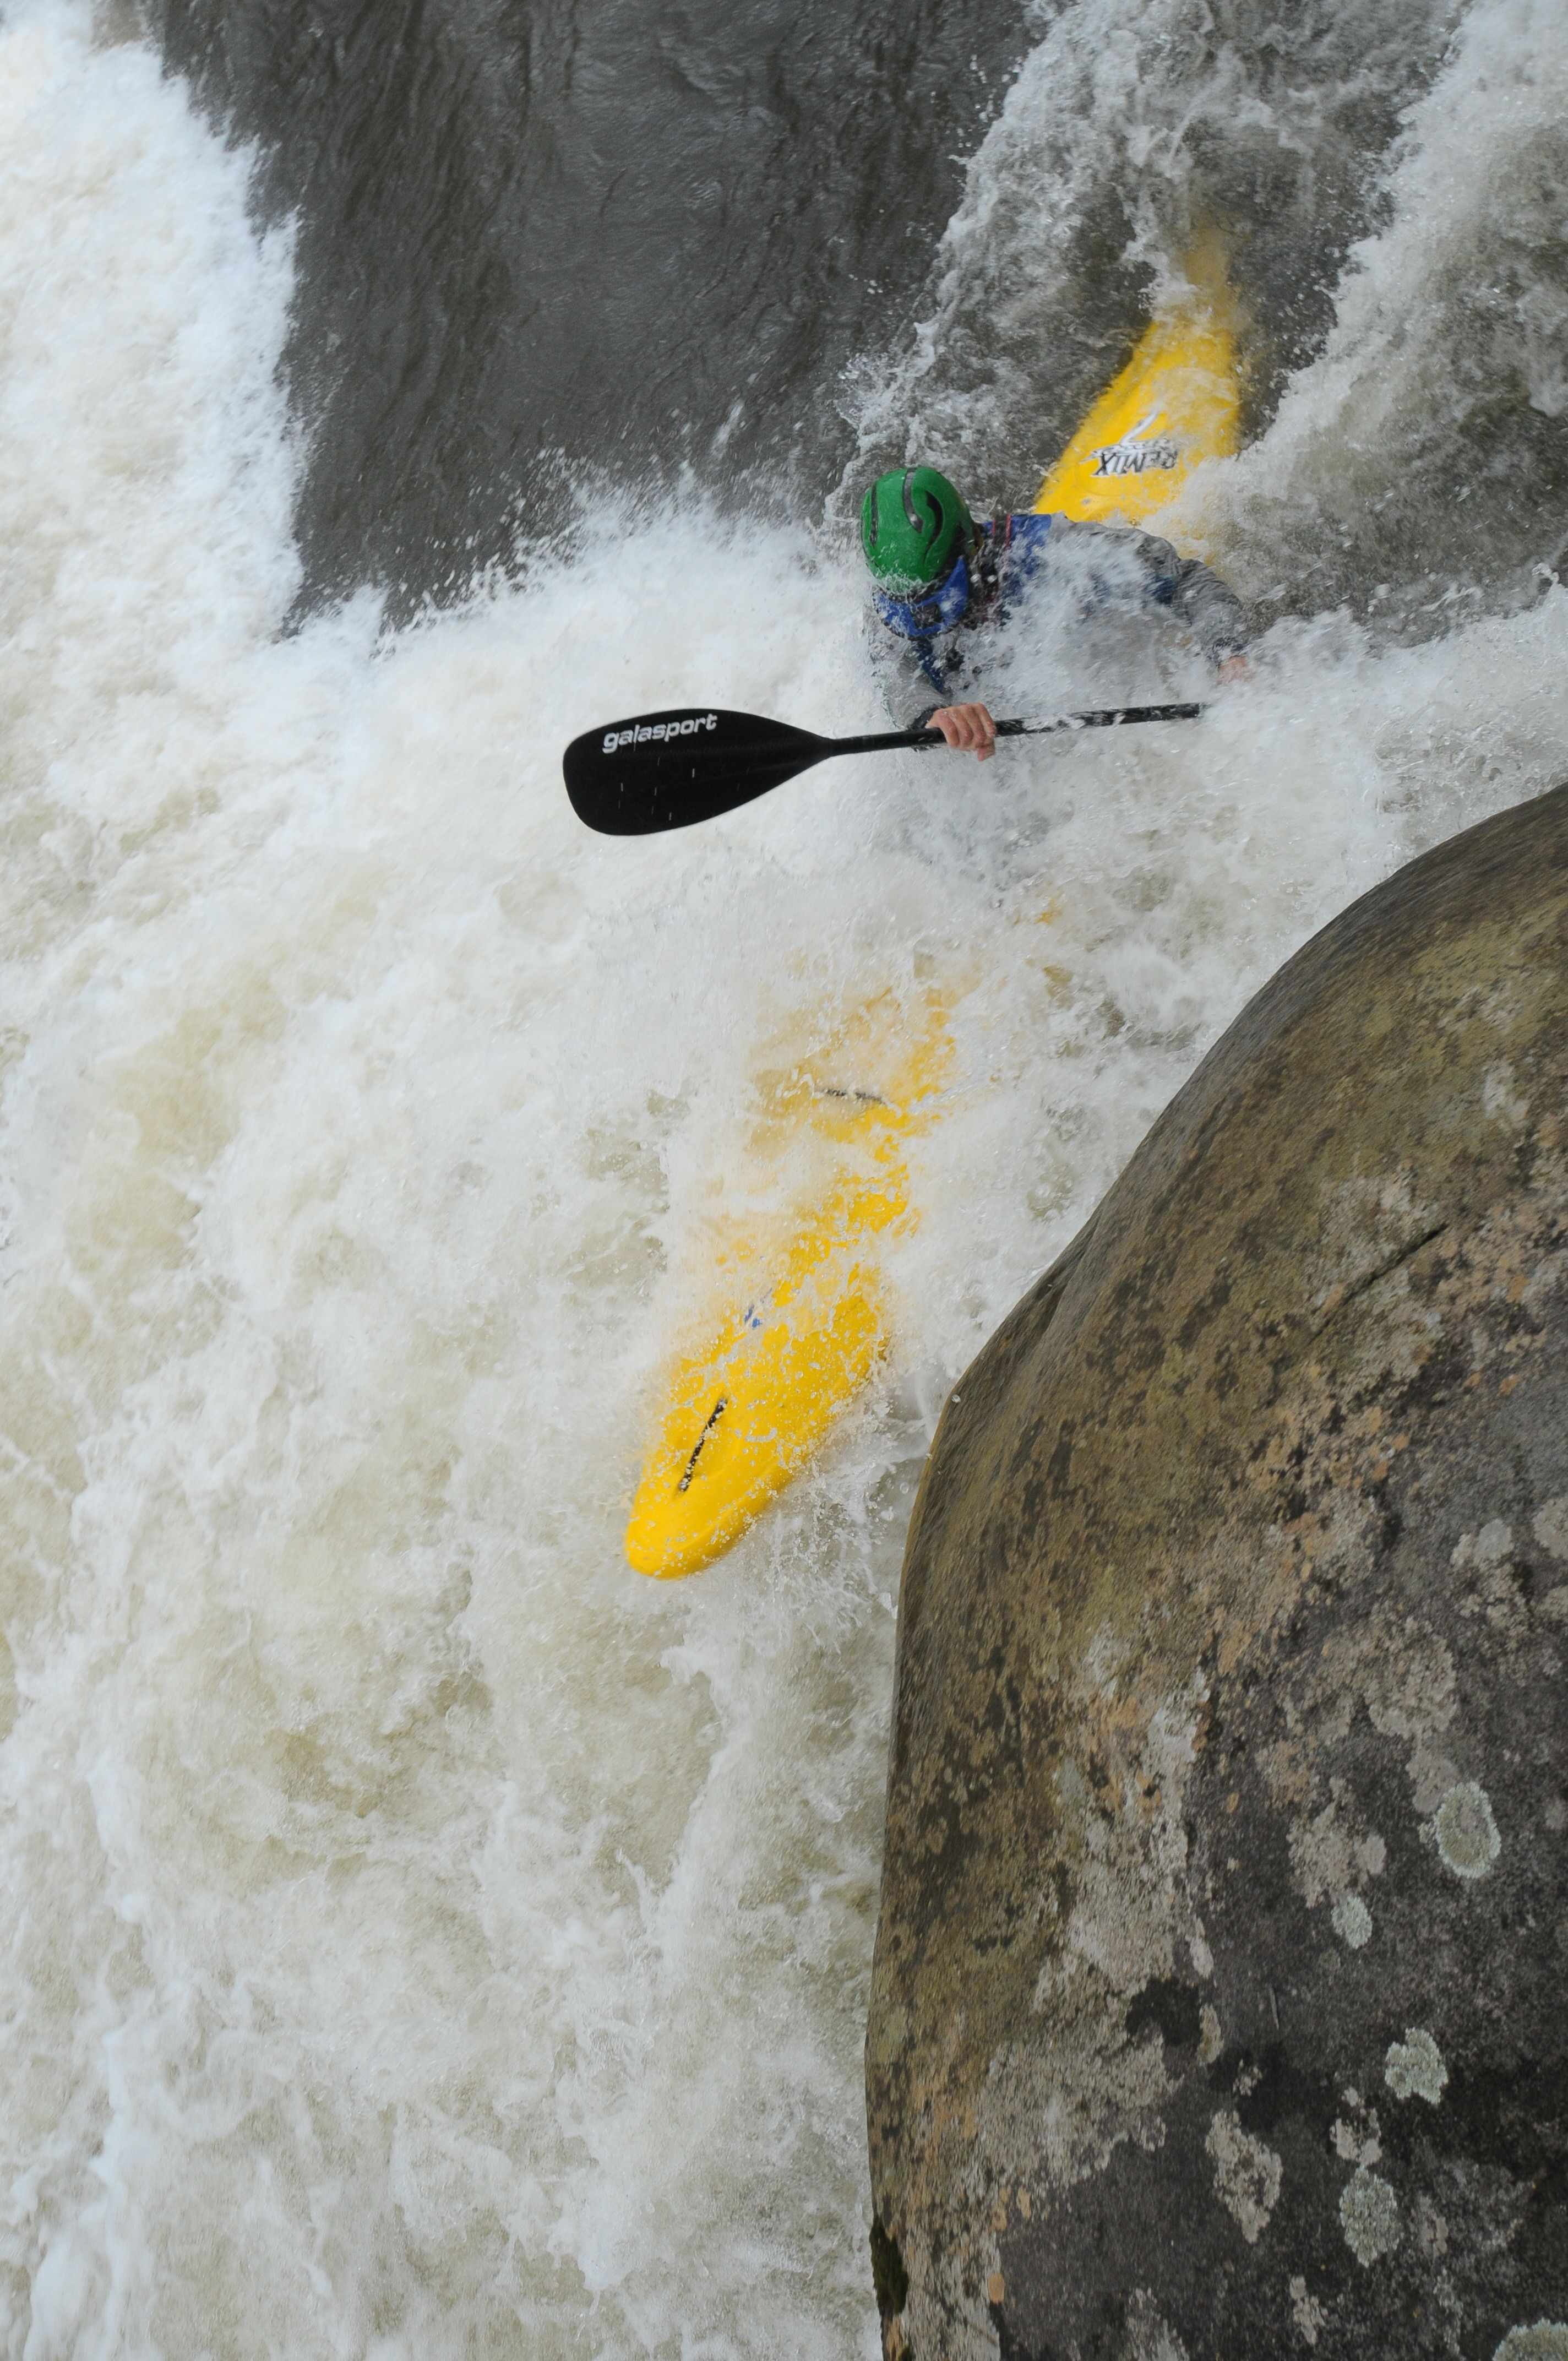 Kayak Wilderness Voyageurs Guides Sure Know How To Do It Upper Yough River